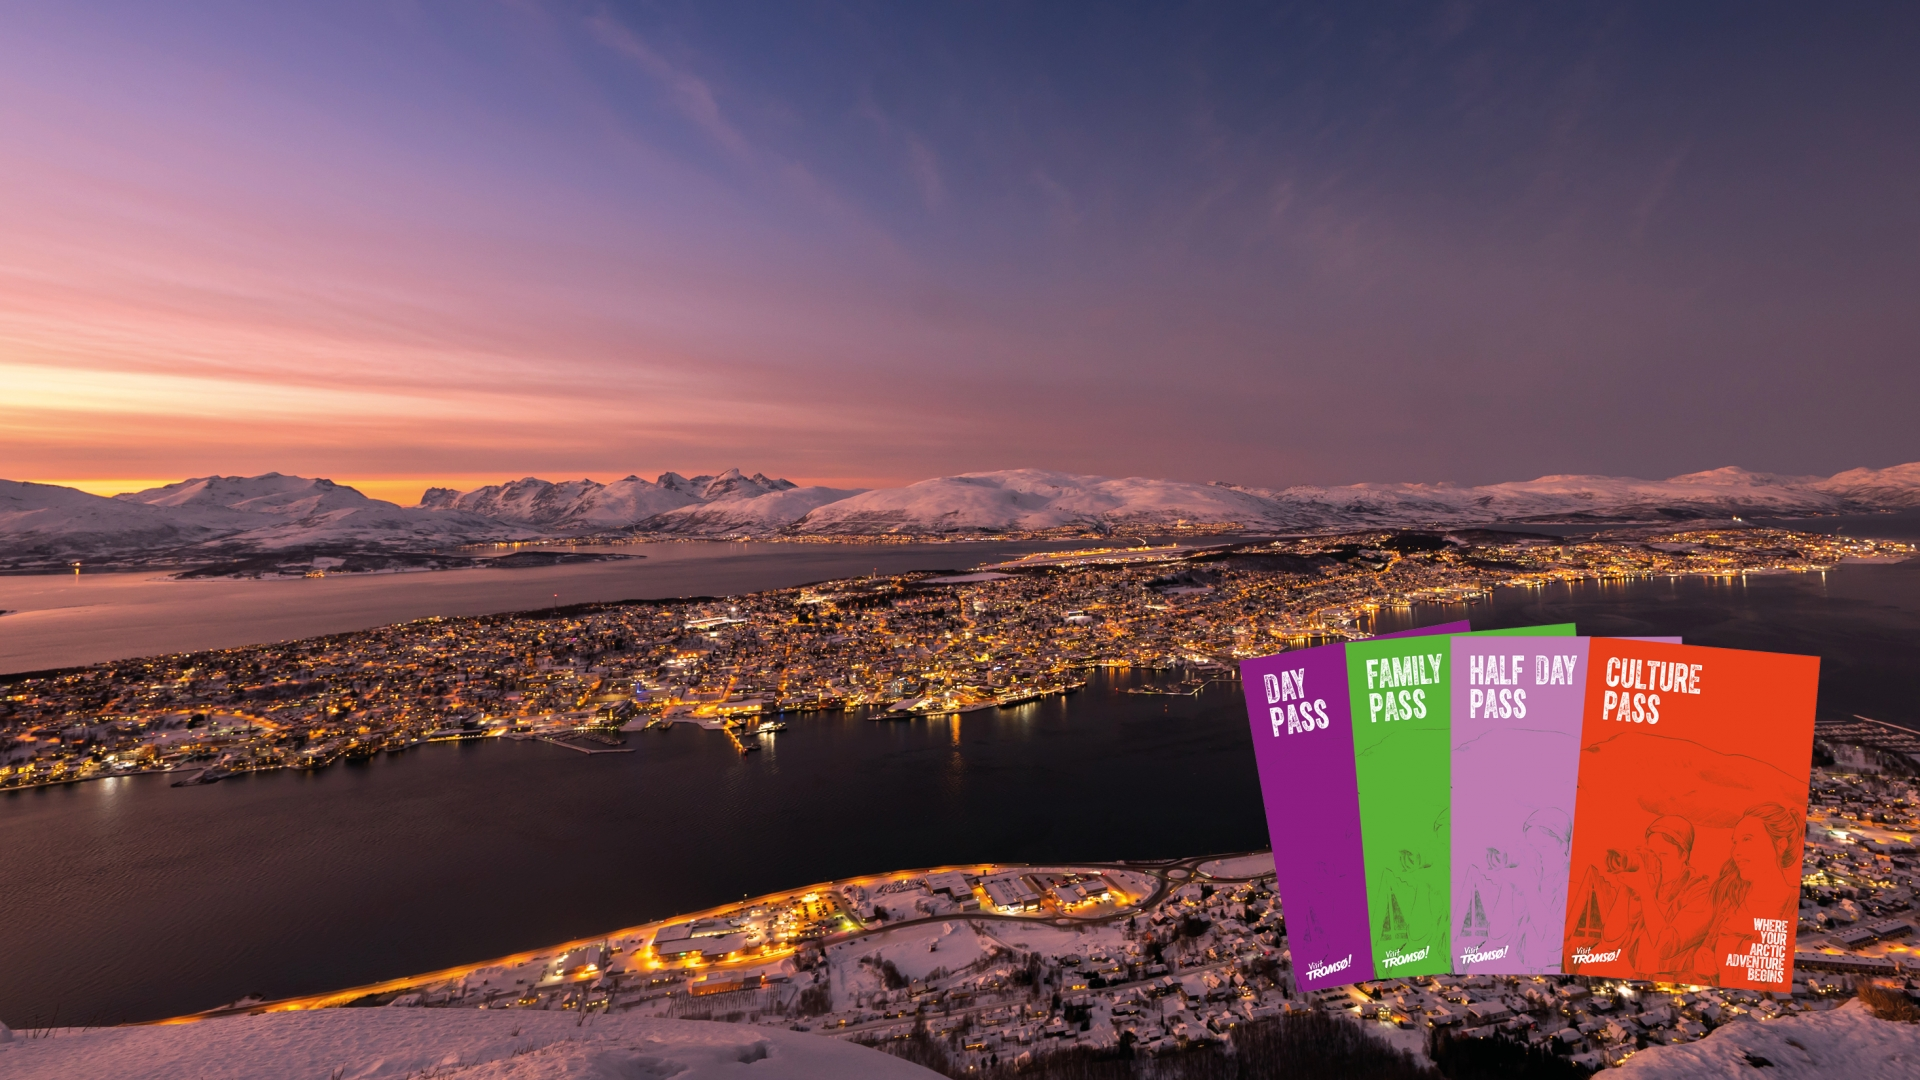 Images of the Tromsø pass with Tromsø island in the background